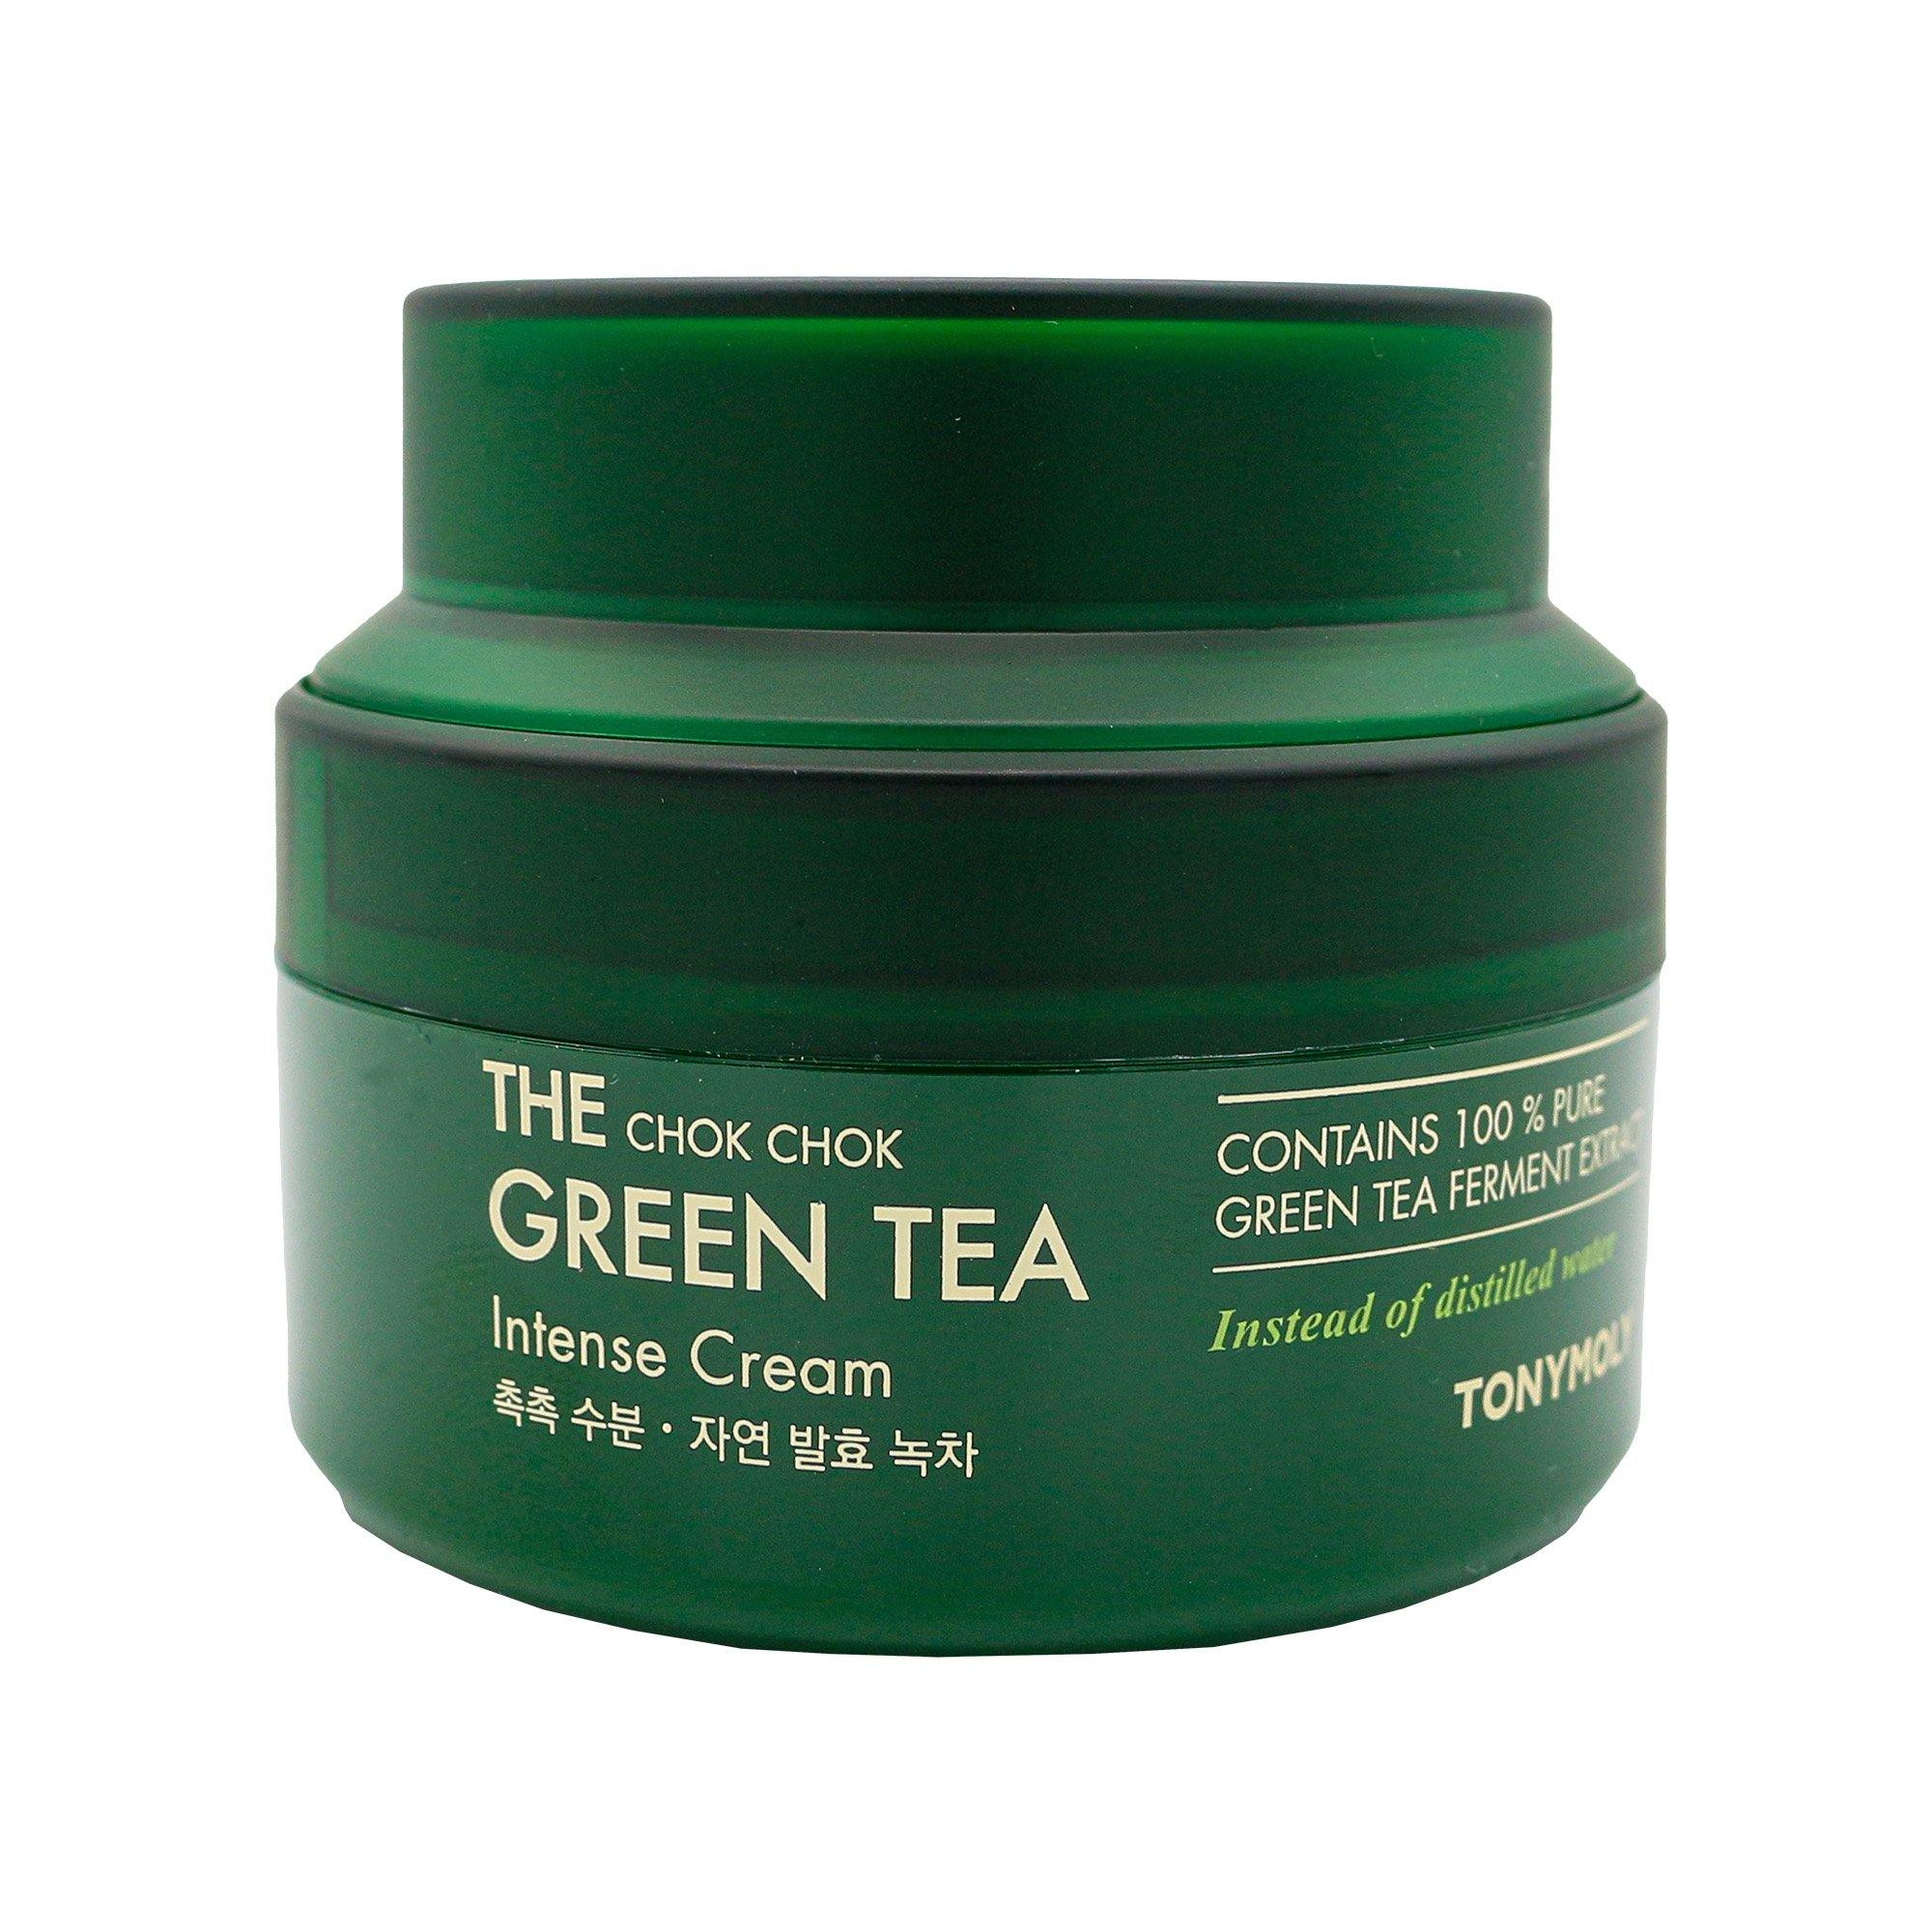 TONYMOLY The Chok Chok Green Tea - Holiday Edition Bundle Kit - TONYMOLY OFFICIAL